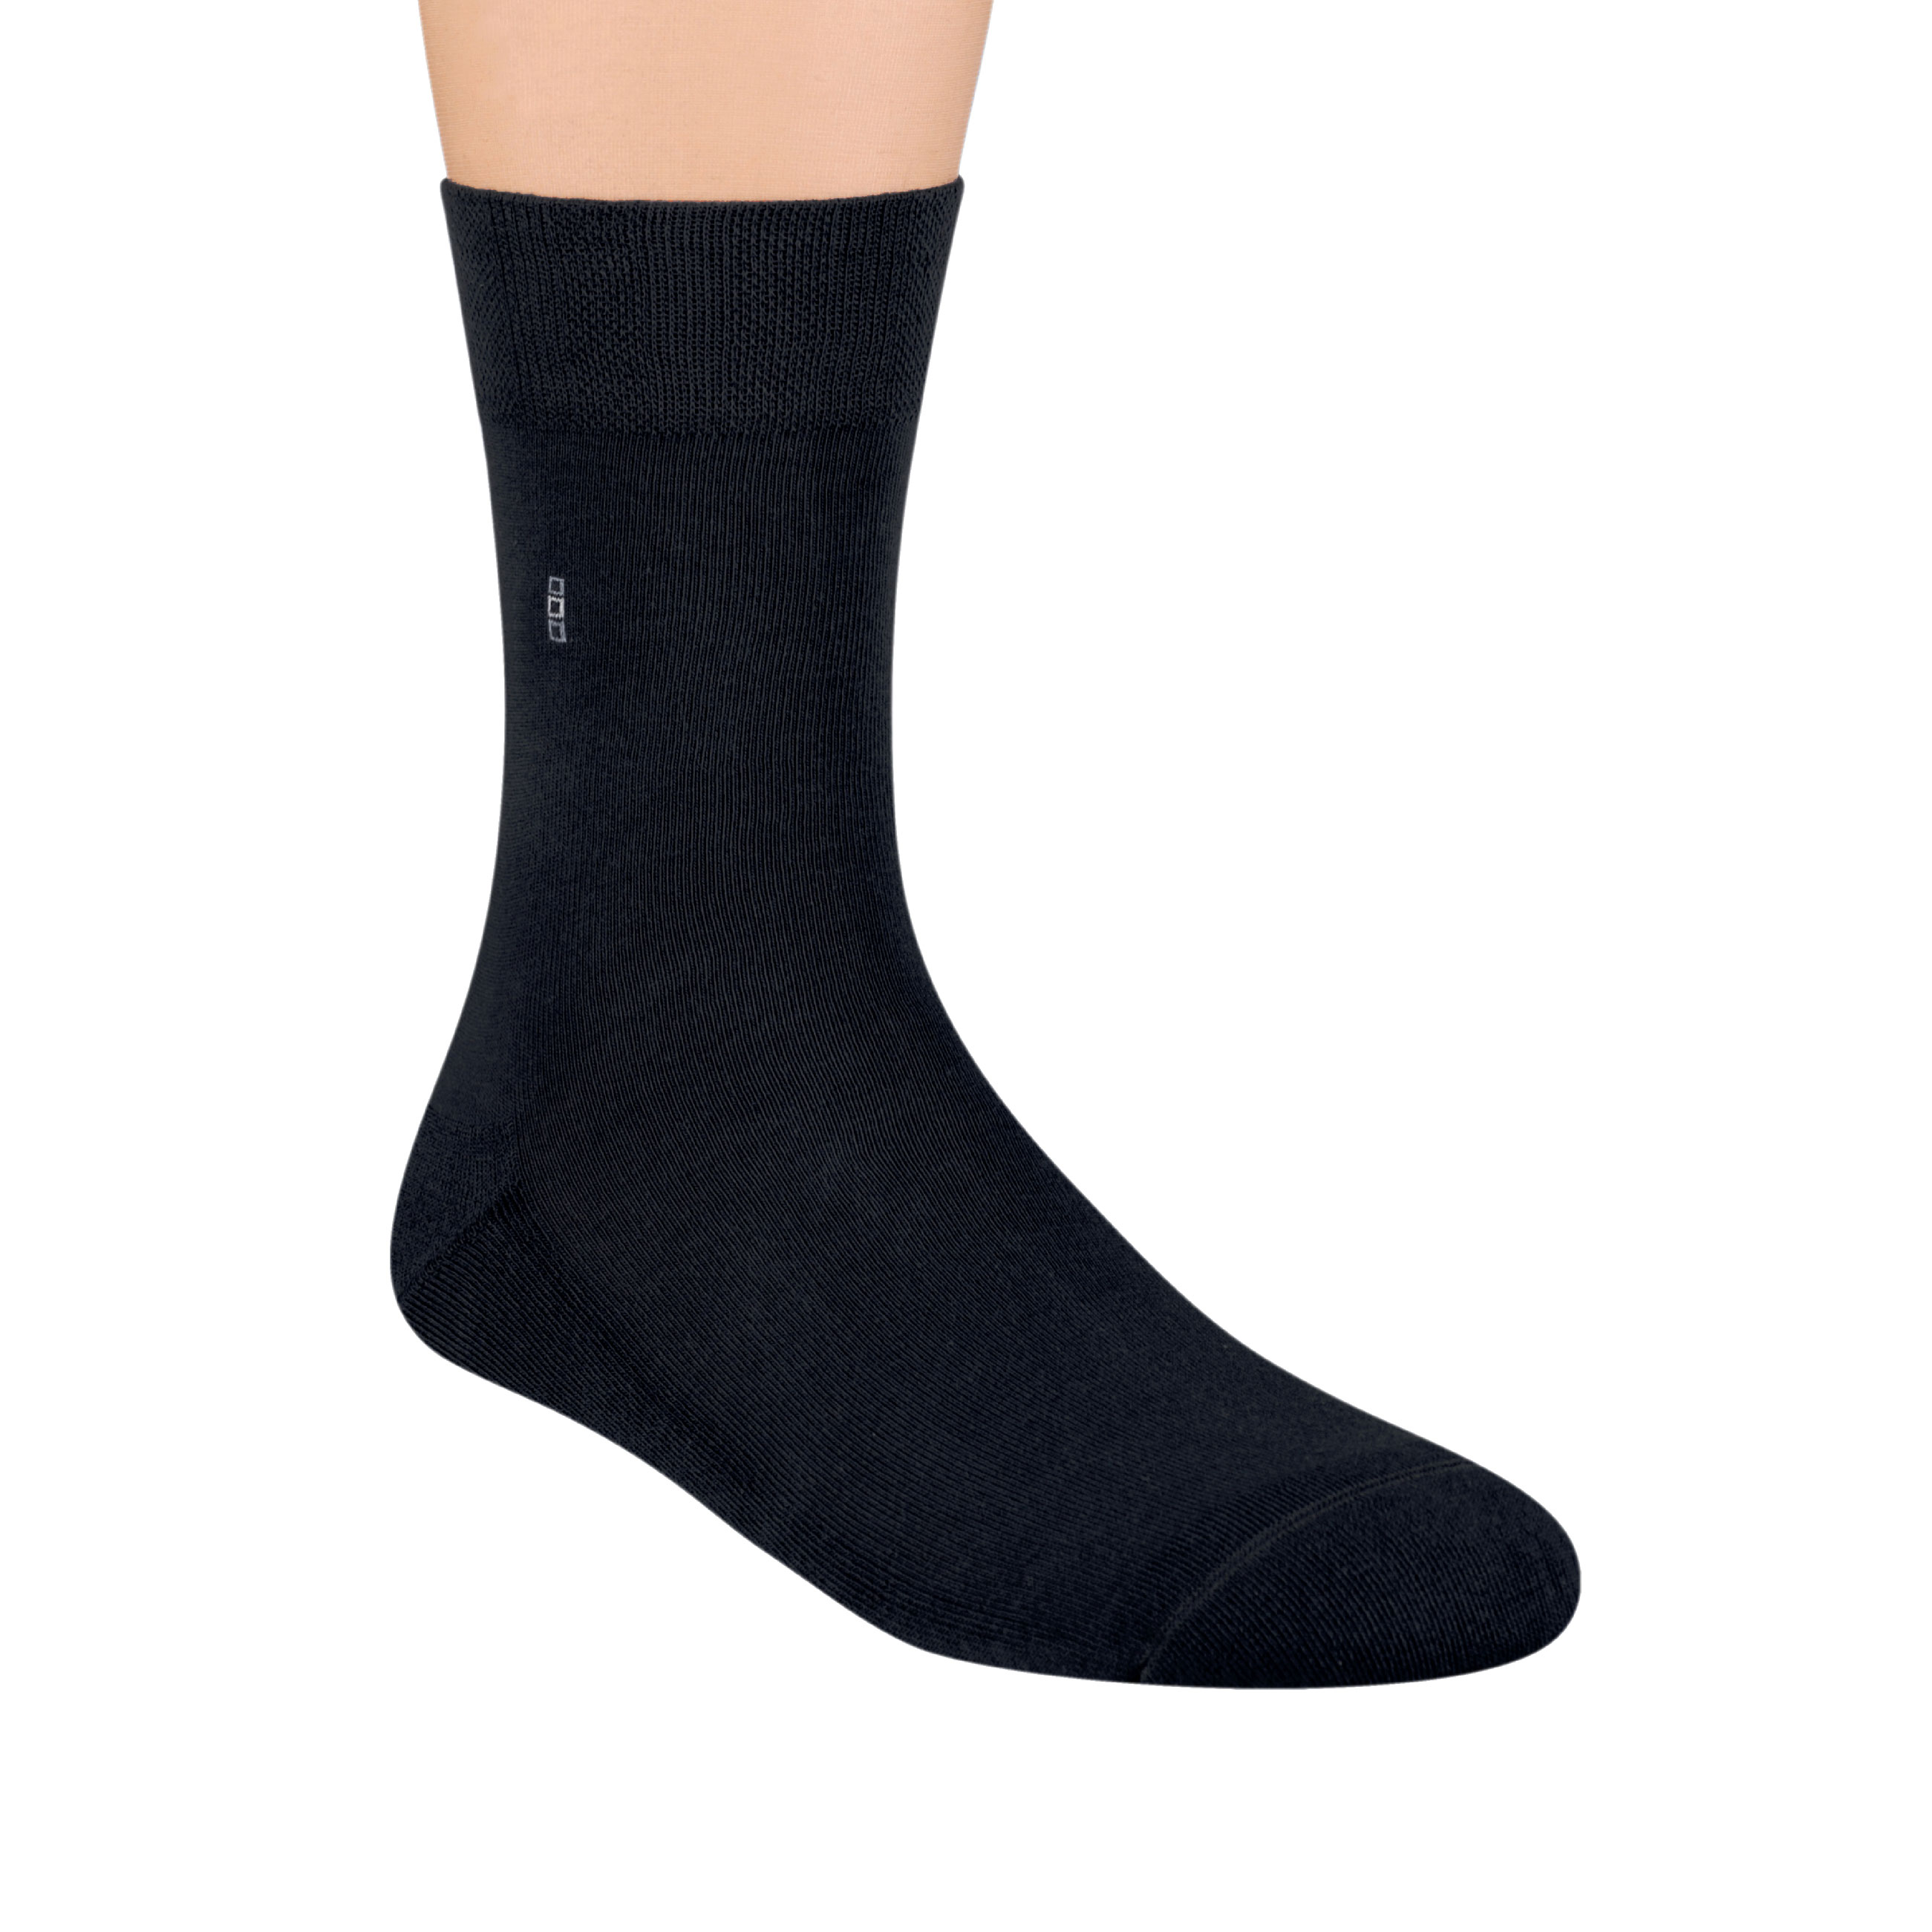 MEN'S SOCKS WITH SOLE FOR SHOES Frota, S003 BLACK